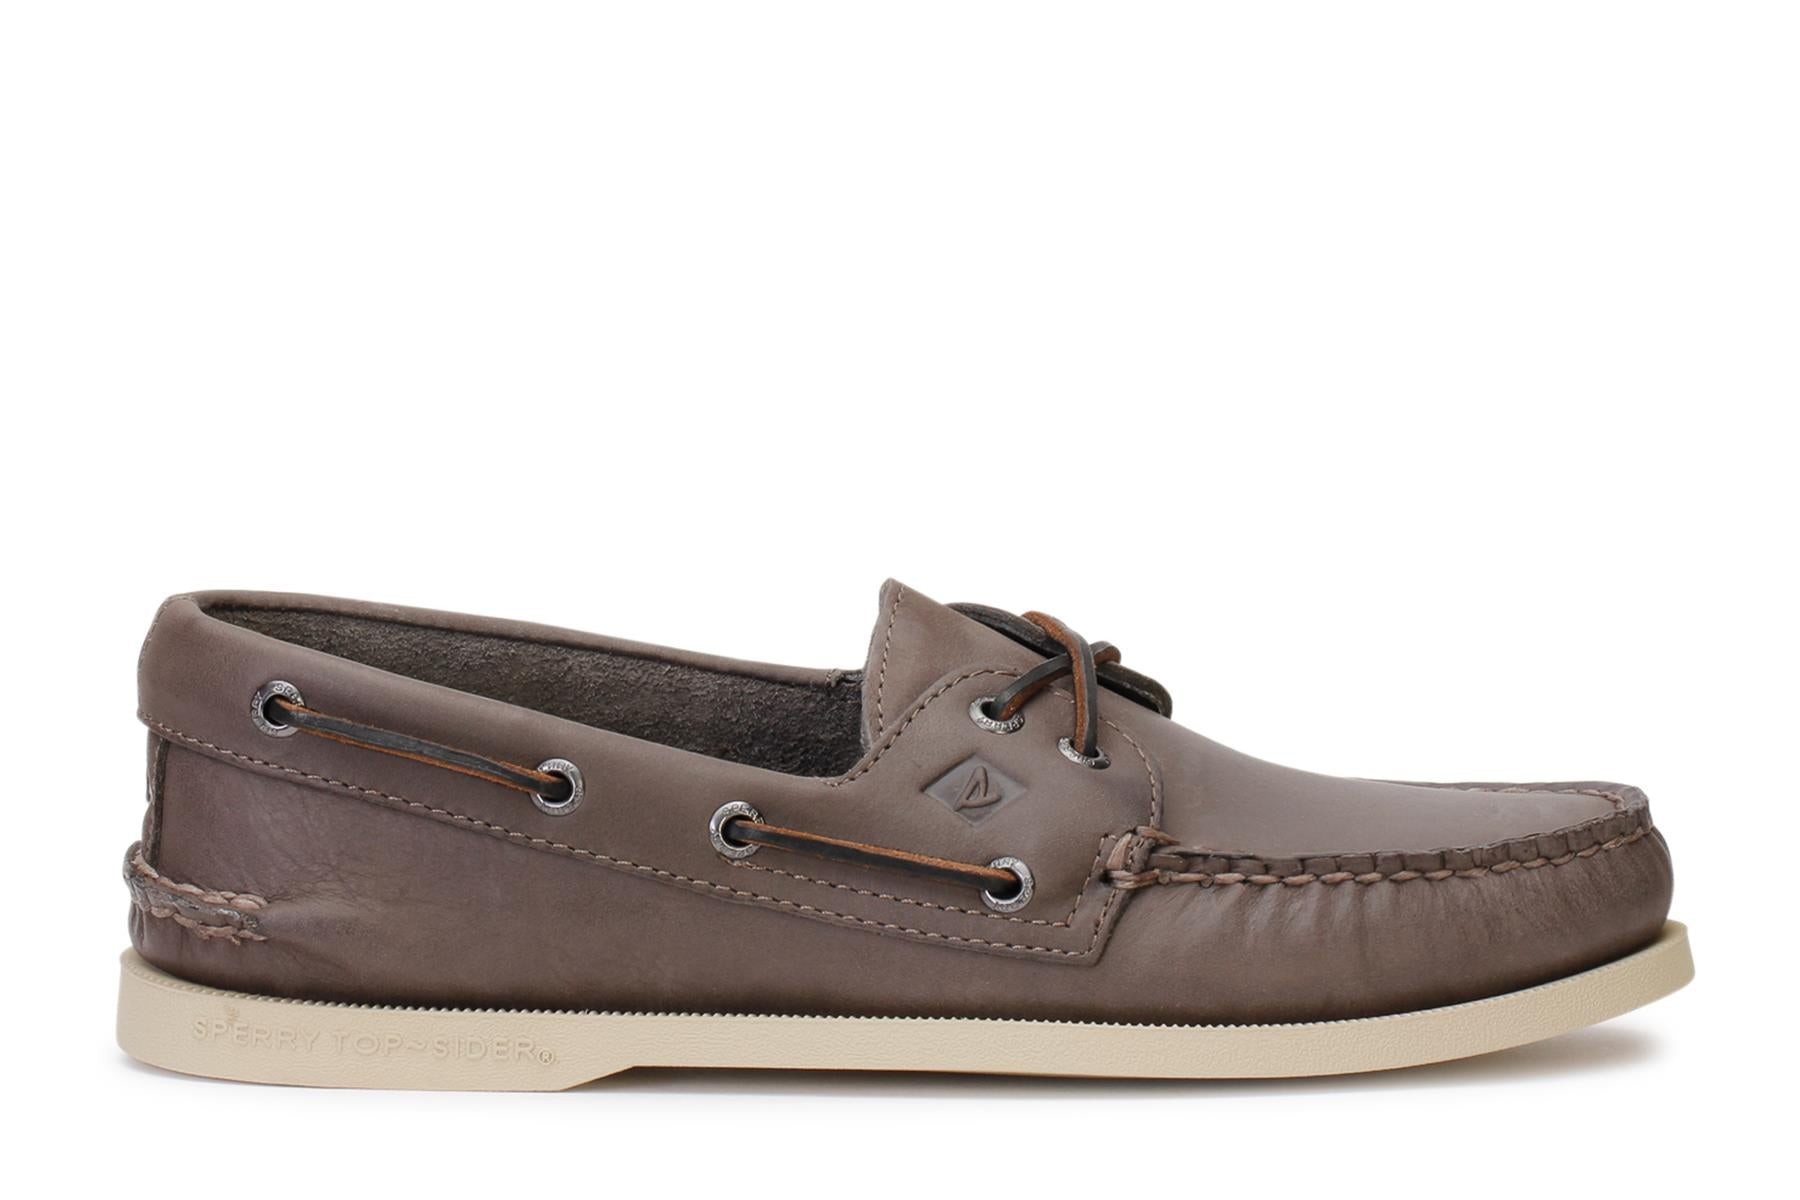 Authentic Original 2 Eye Sperry Boat Shoes